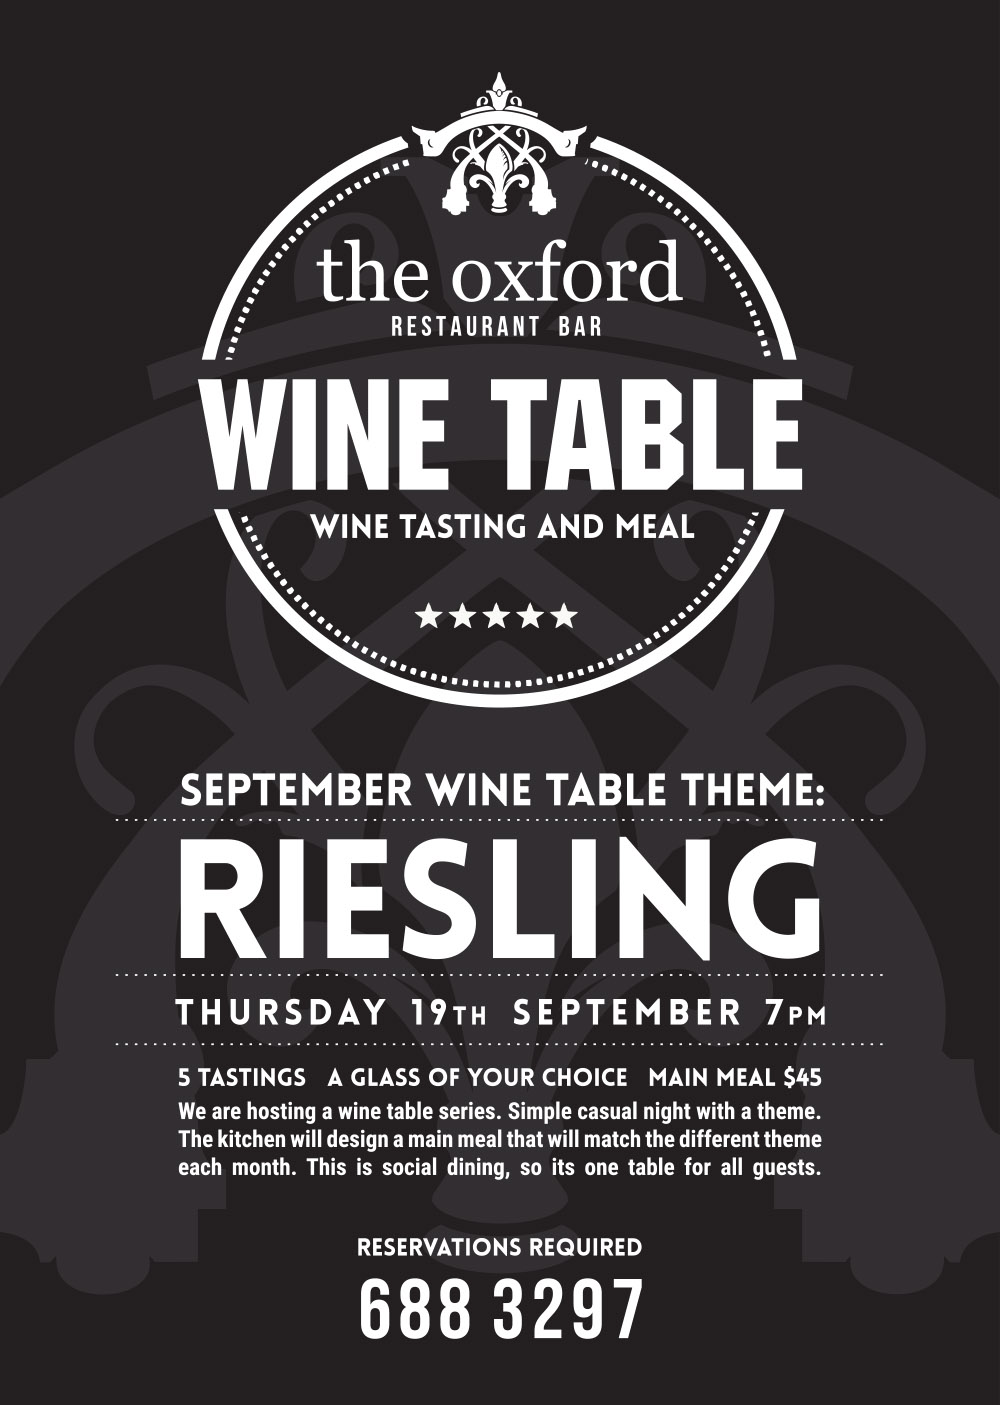 Wine Table Sept: Riesling